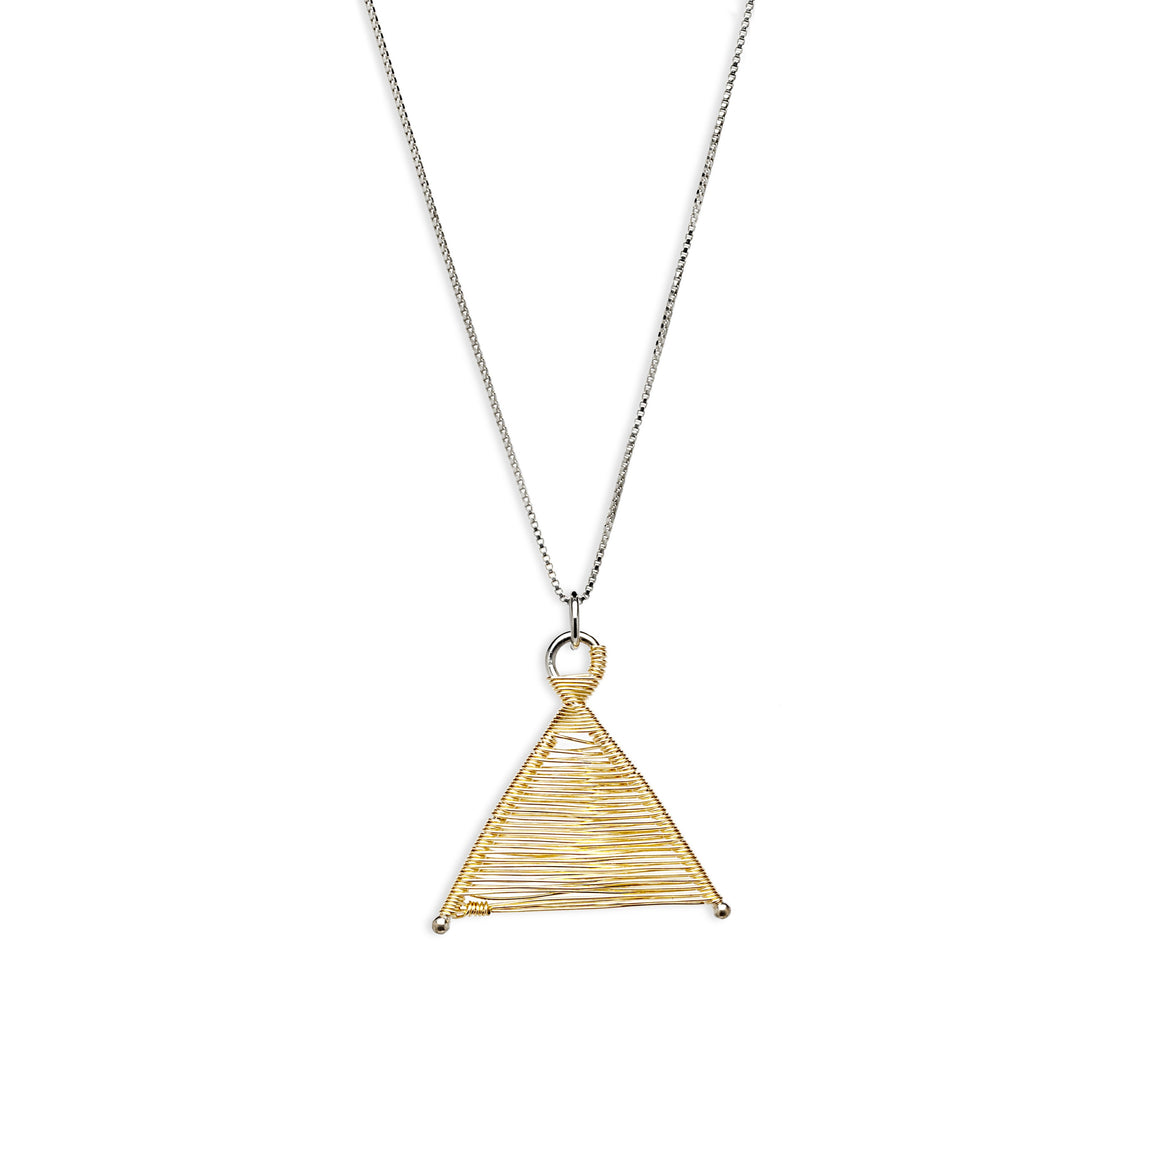 Wishbone Woven 14k Gold Fill Pendant and Silver Necklace by Original Sin Jewelry in Tucson Arizona Mixed Metal